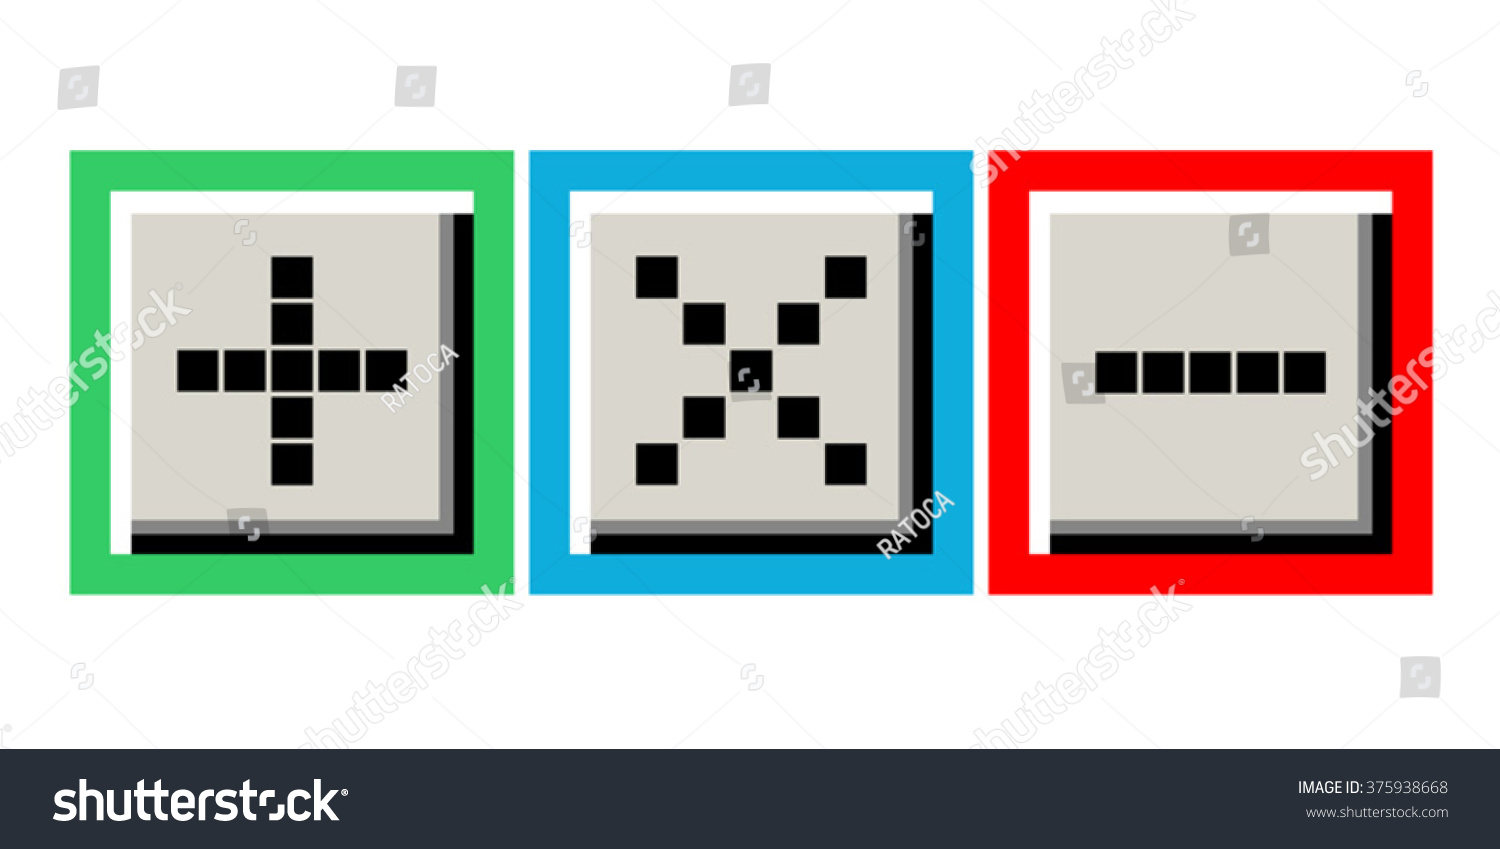 More Less Symbol Stock Vector Hd Royalty Free 375938668 Shutterstock